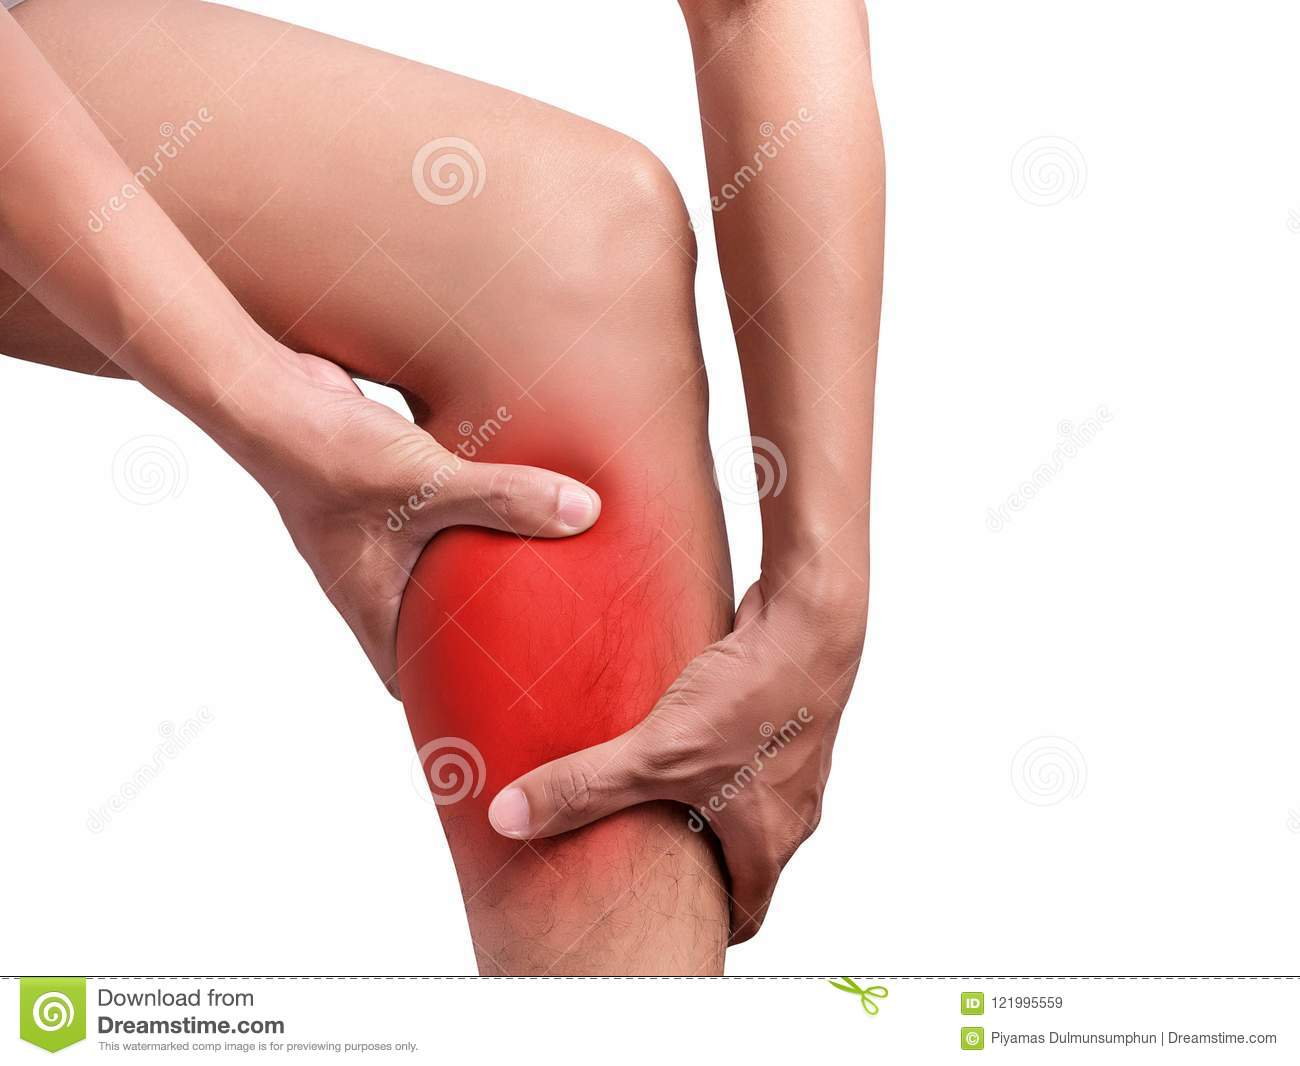 Man suffering from leg pain, calf pain. red color highlight